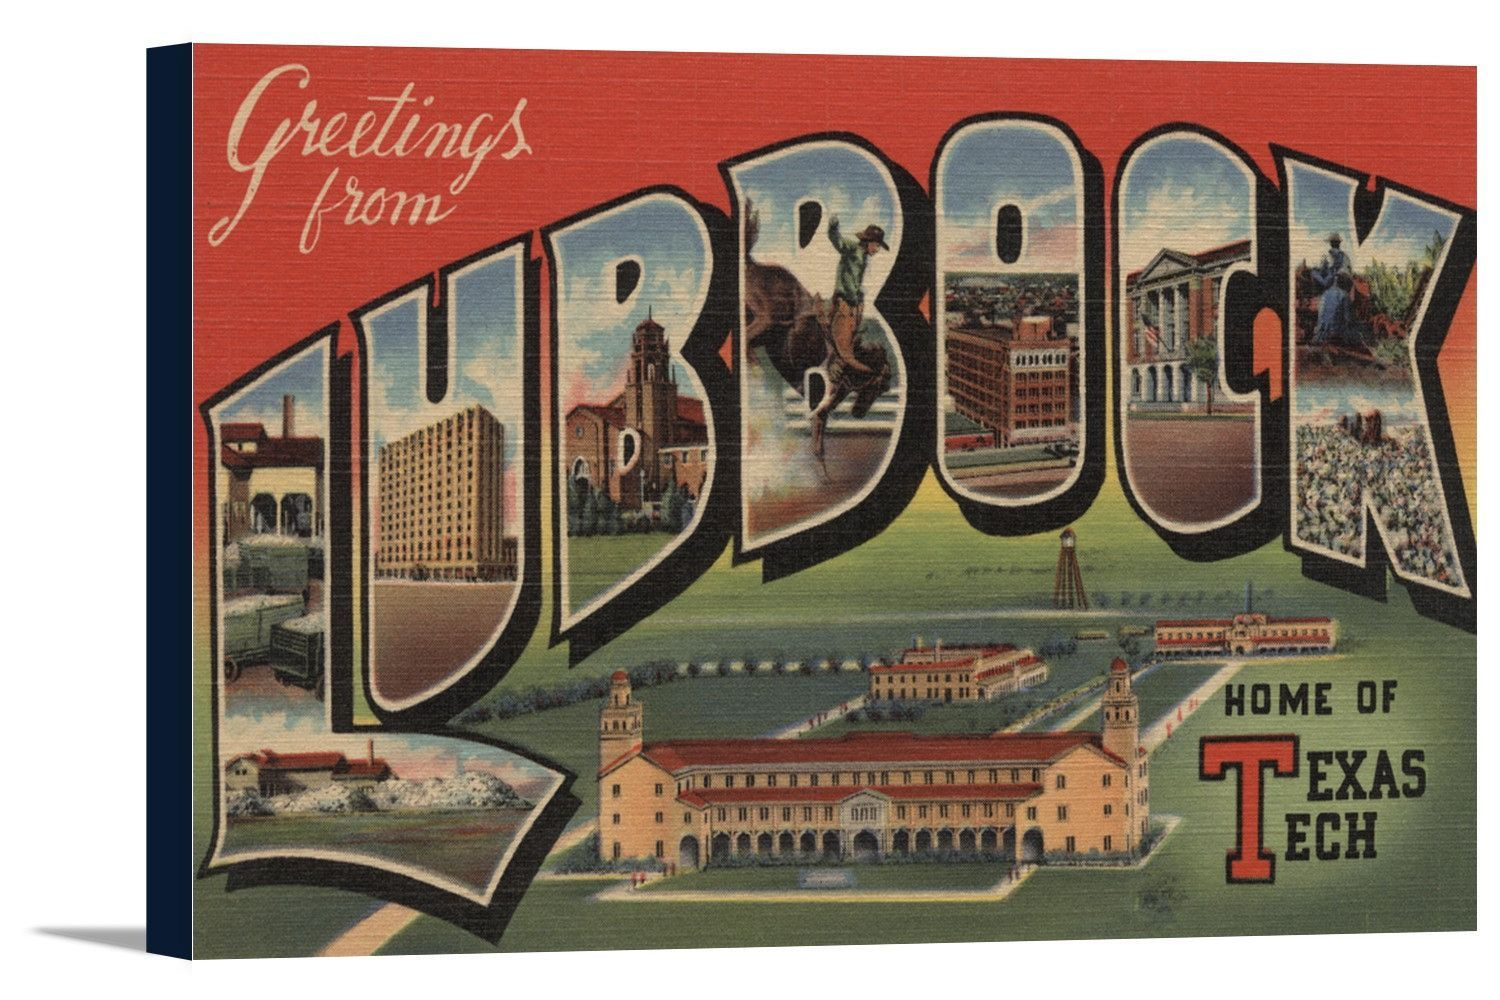 Canvas lubbock texas greetings from texas tech vintage canvas lubbock texas greetings from texas tech vintage travel poster kristyandbryce Choice Image